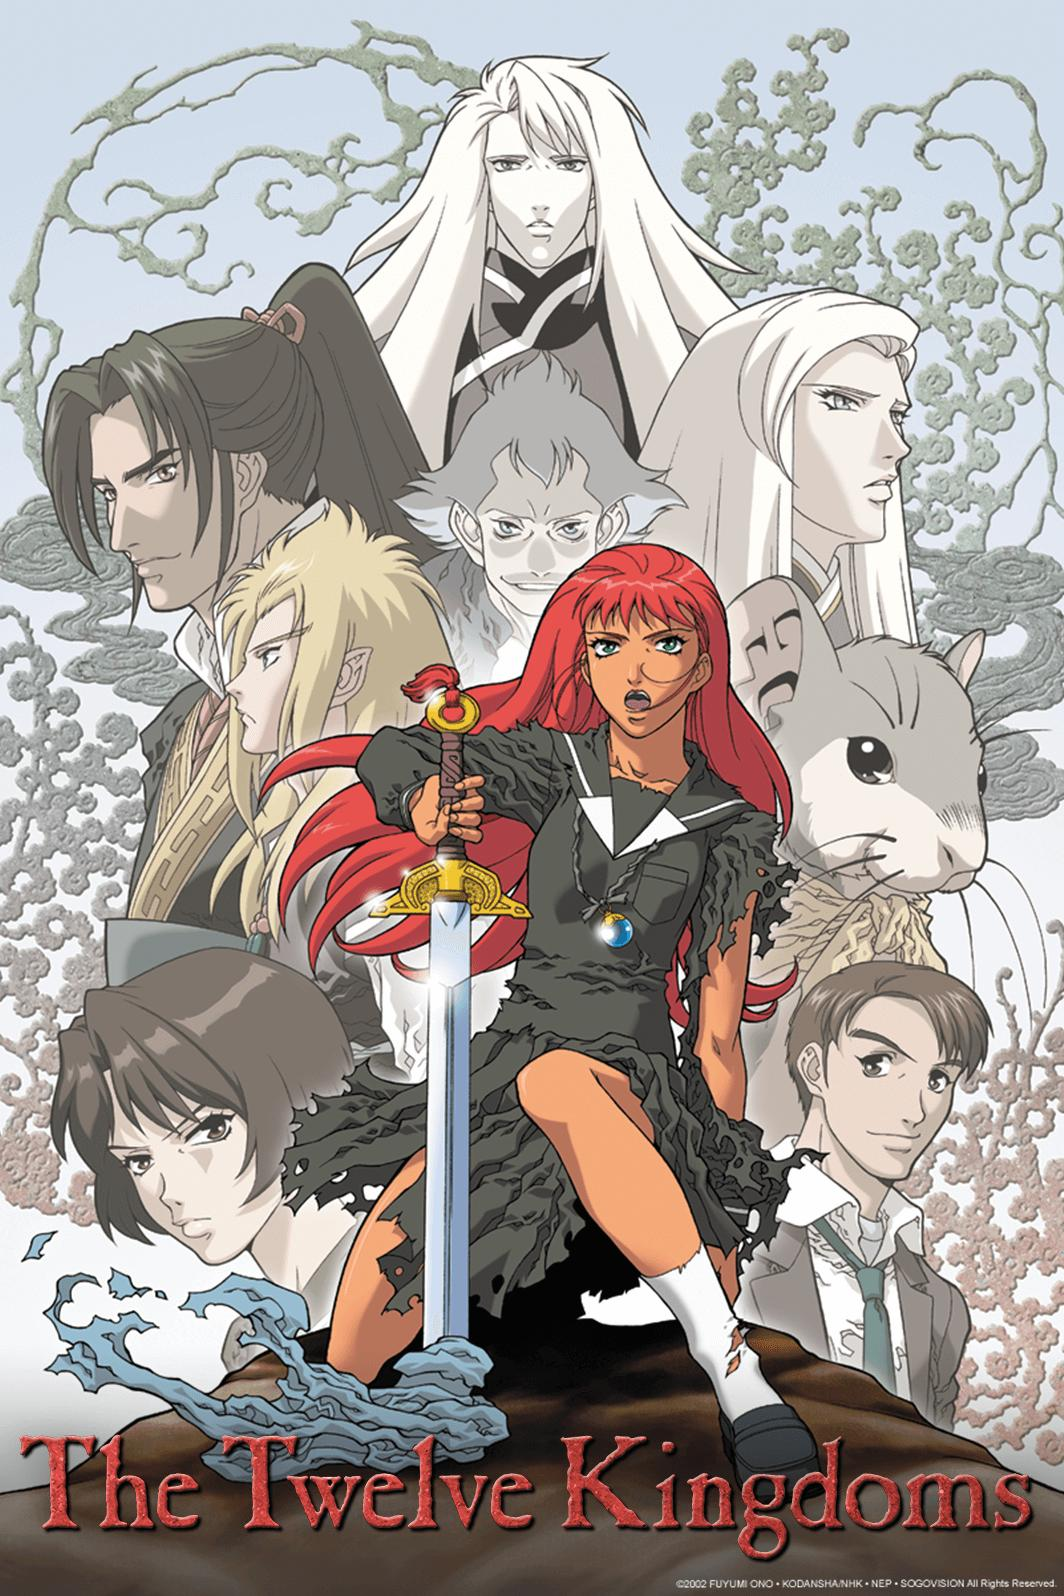 The Twelve Kingdoms - Watch on Crunchyroll